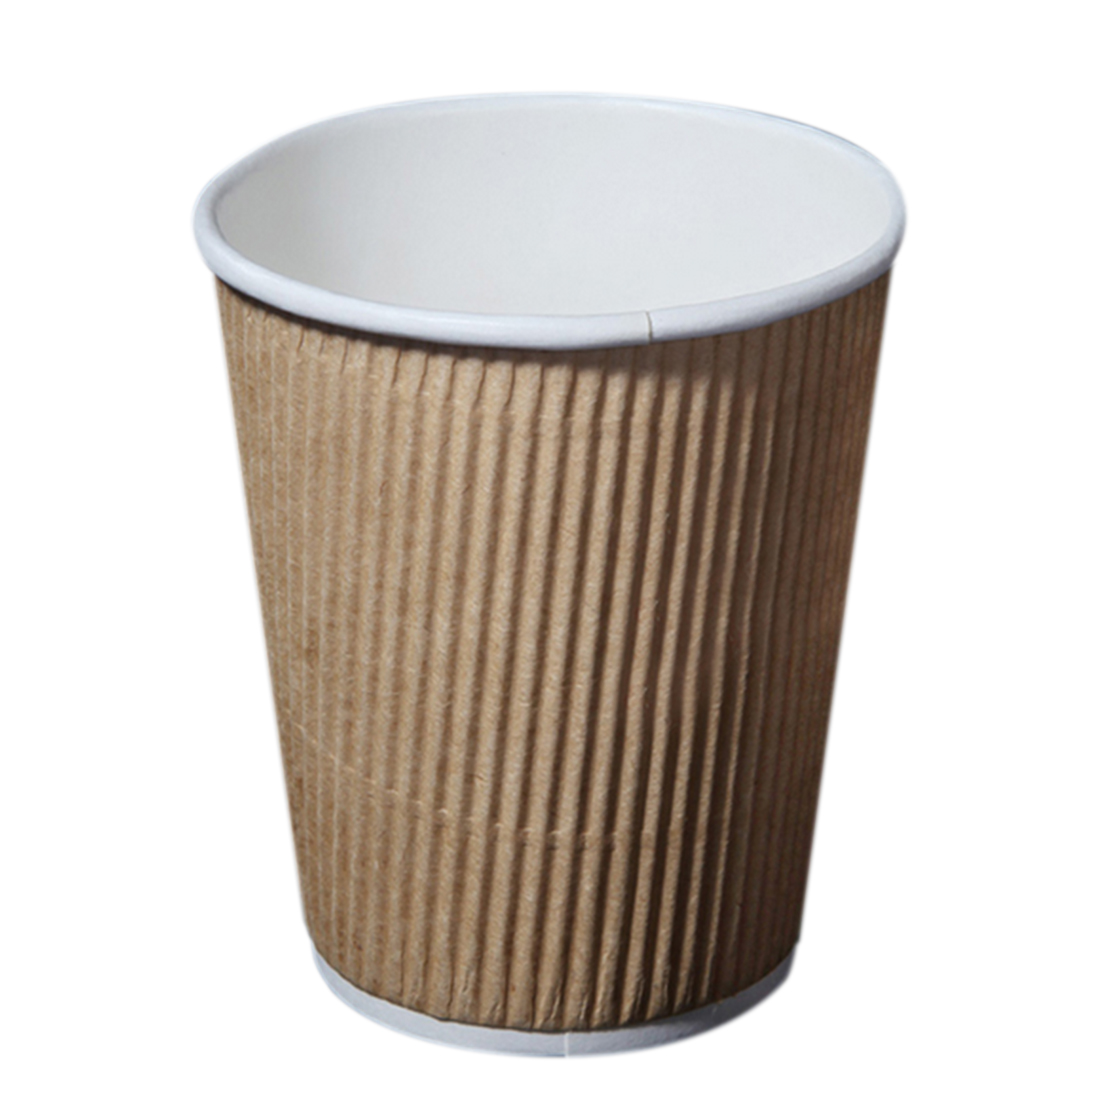 100Pcs Disposable Kraft Paper Coffee Cups Party Home Paper Drinking Ripple and Insulated Cups 8oz